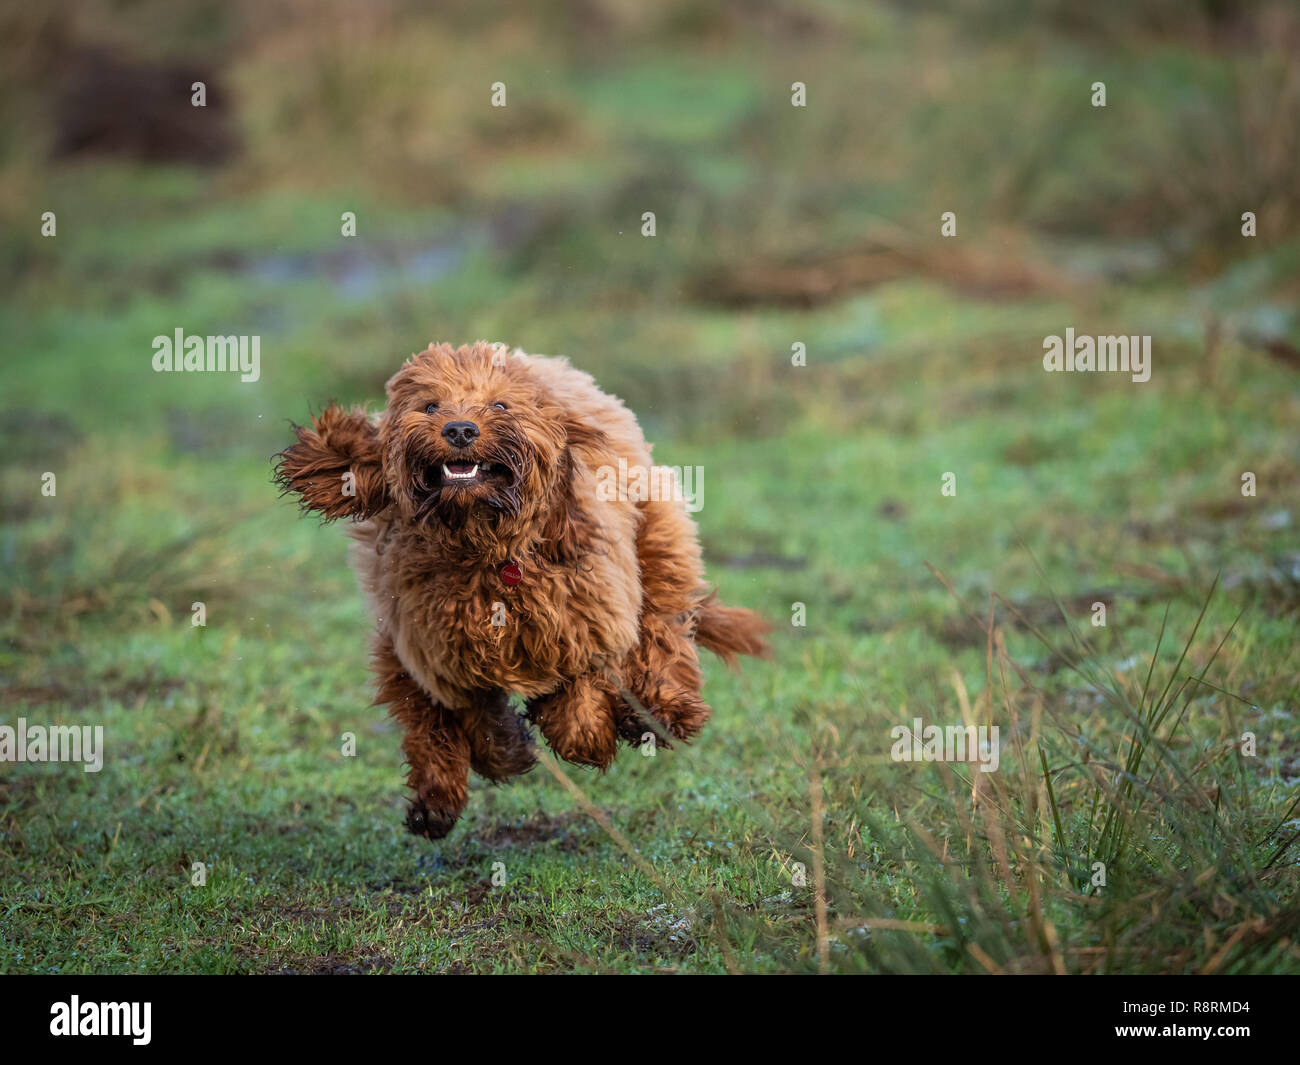 A young cockapoo puppy running and  playing in a field on a cold frosty morning - Stock Image